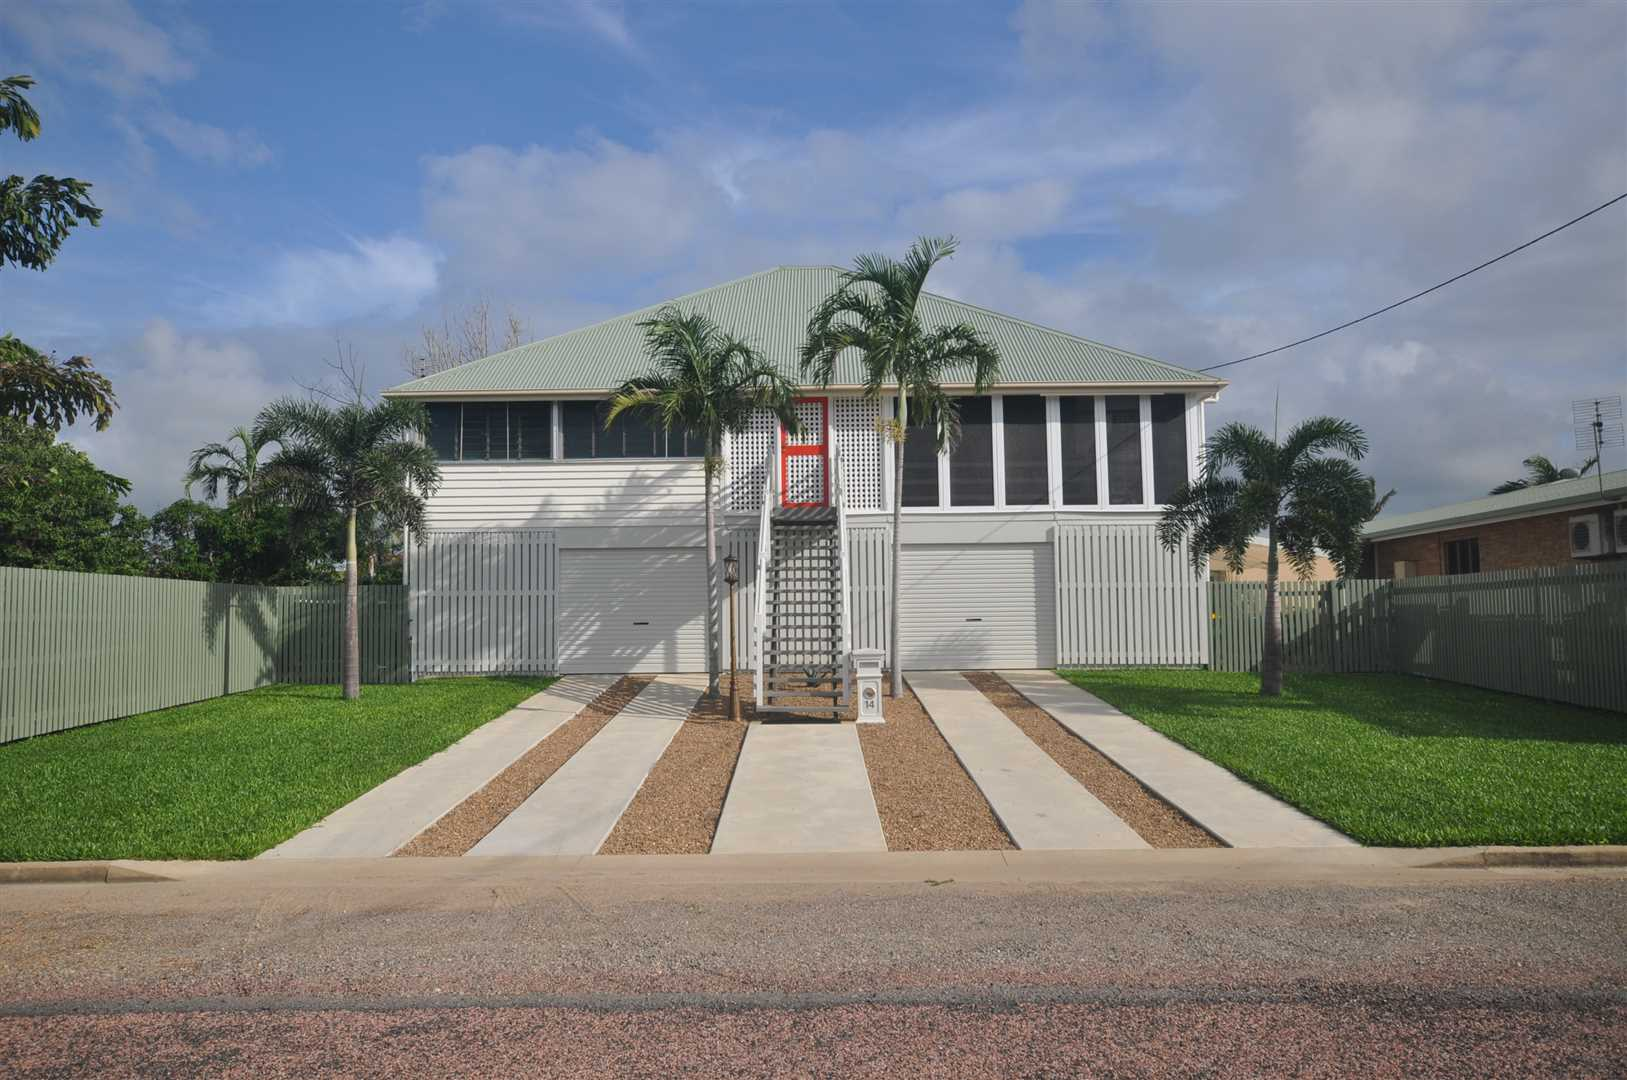 A Queenslander You Have to See - Great Entertainer